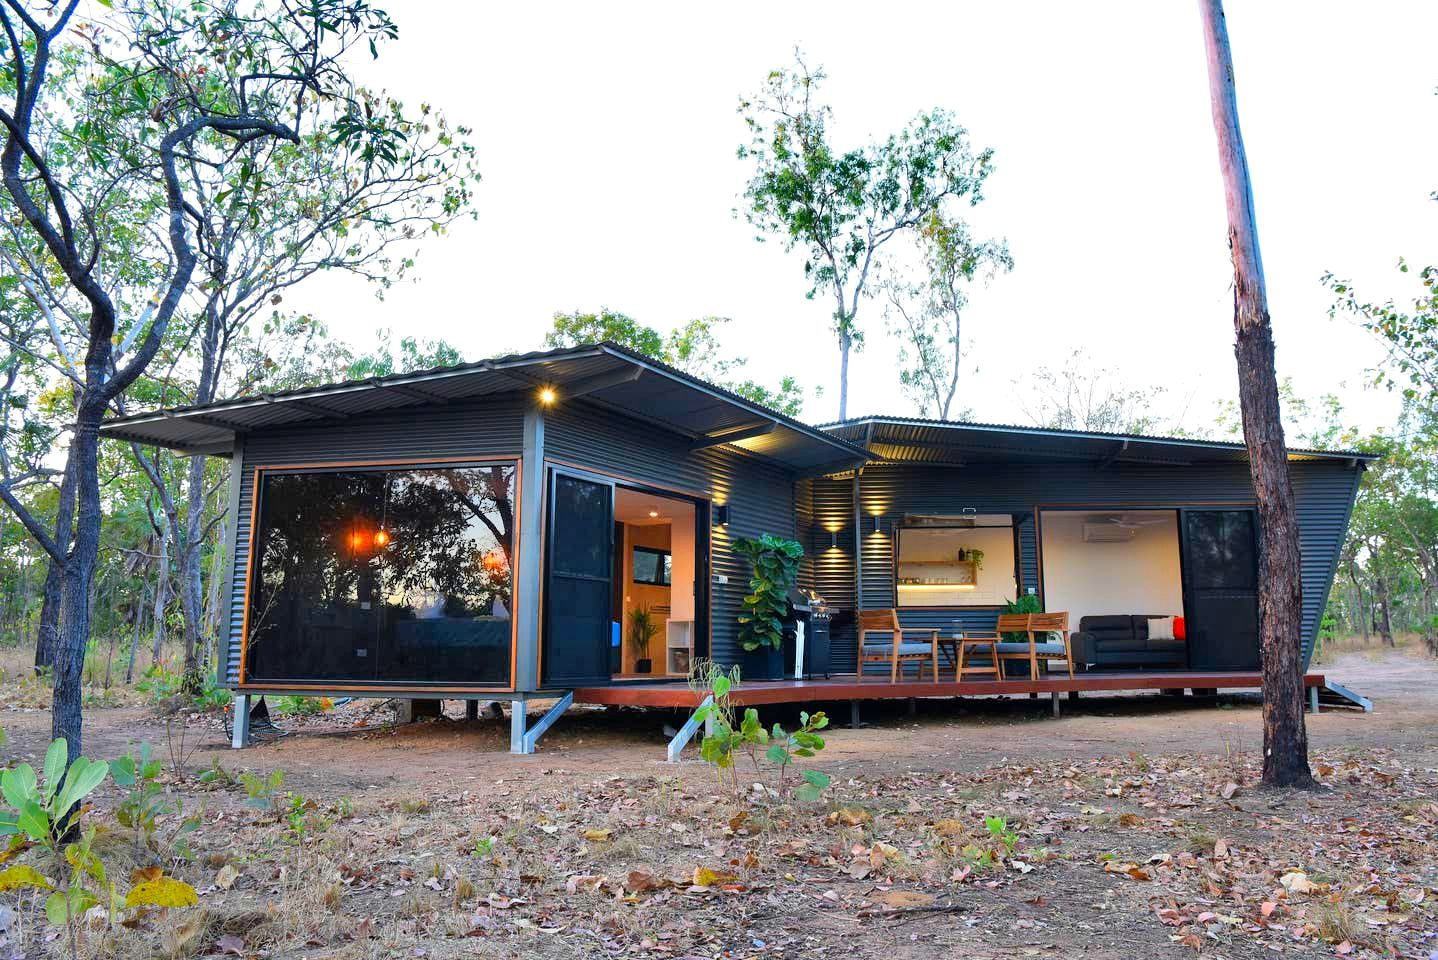 This stunning rental in Rakula is the perfect romantic getaway in Northern Territory. Secluded in the bush, glampers can enjoy a holiday near Darwin.